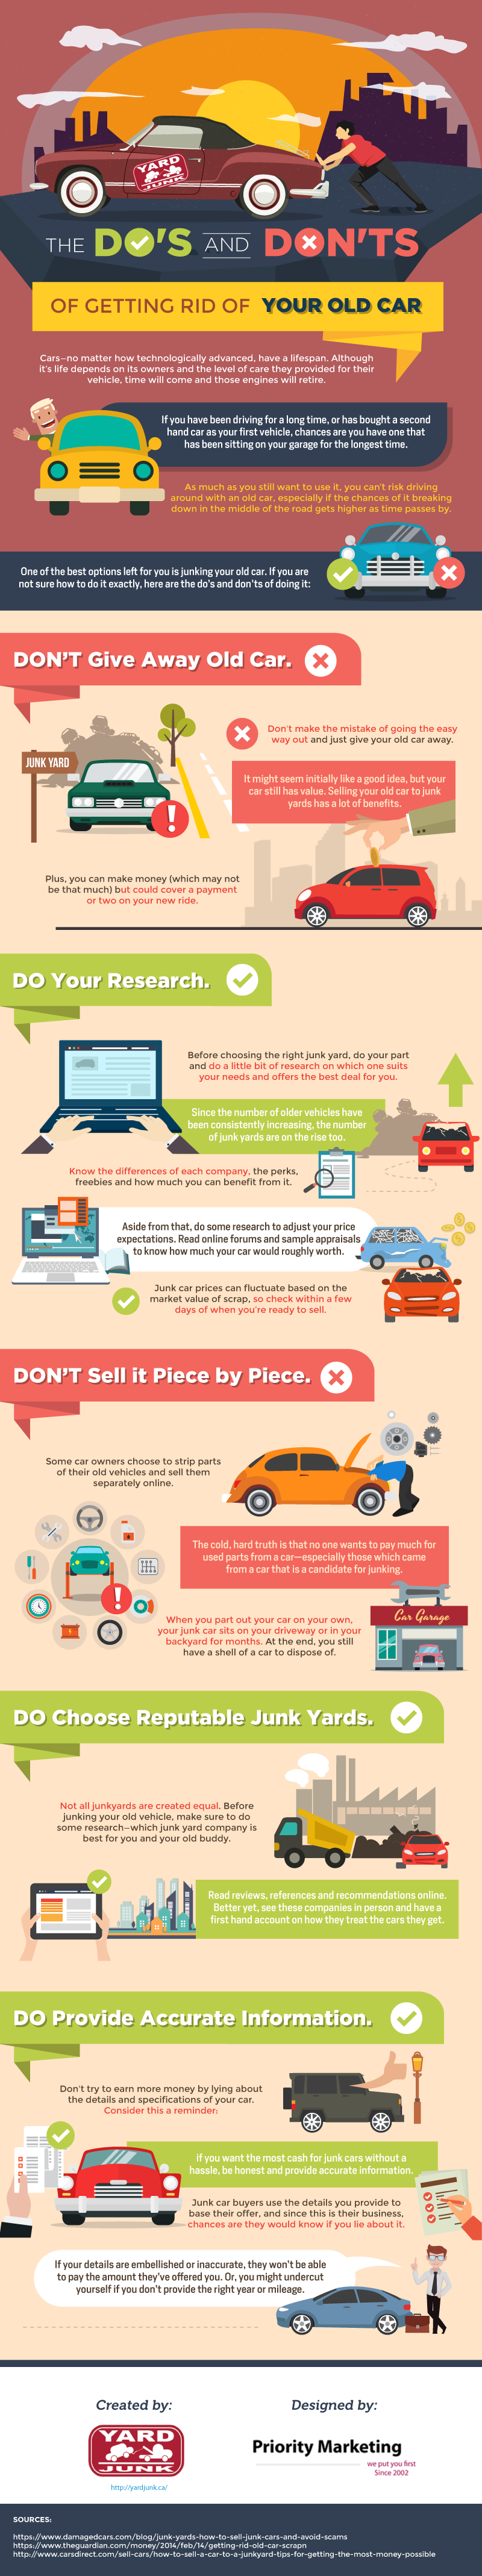 How to Sell Your Old\'n\'Broke Car: Do\'s and Don\'ts Guide - Infographic